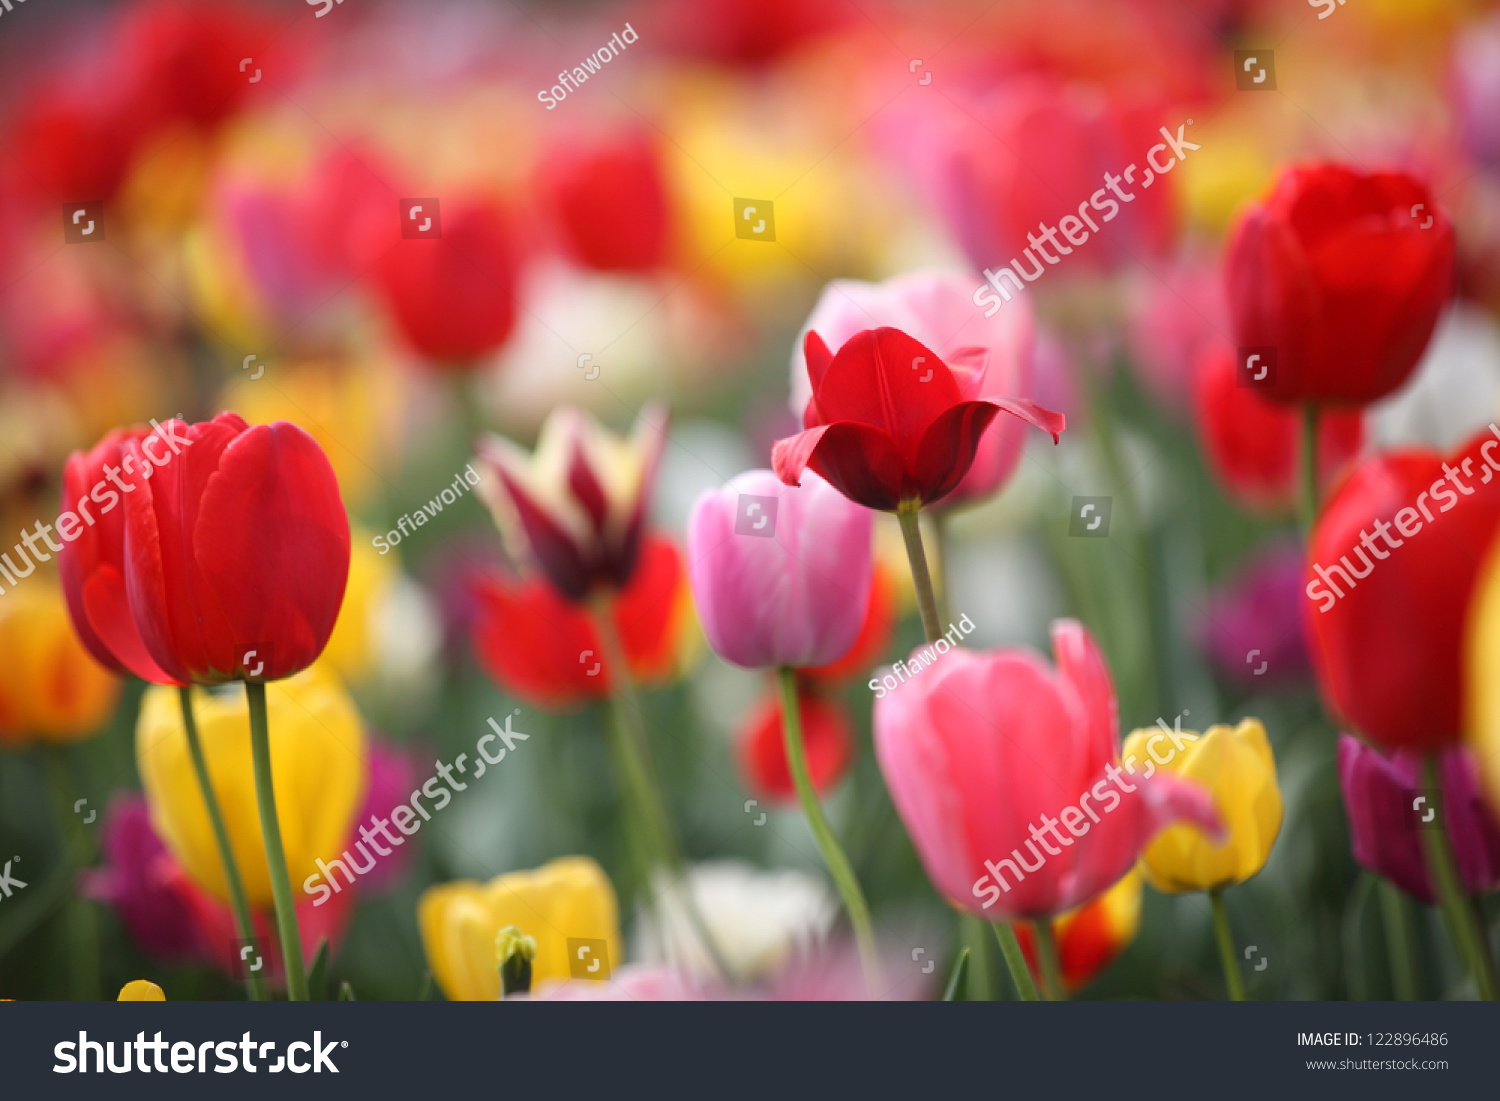 Colorful spring flowers tulips stock photo 122896486 shutterstock colorful spring flowers tulips mightylinksfo Image collections